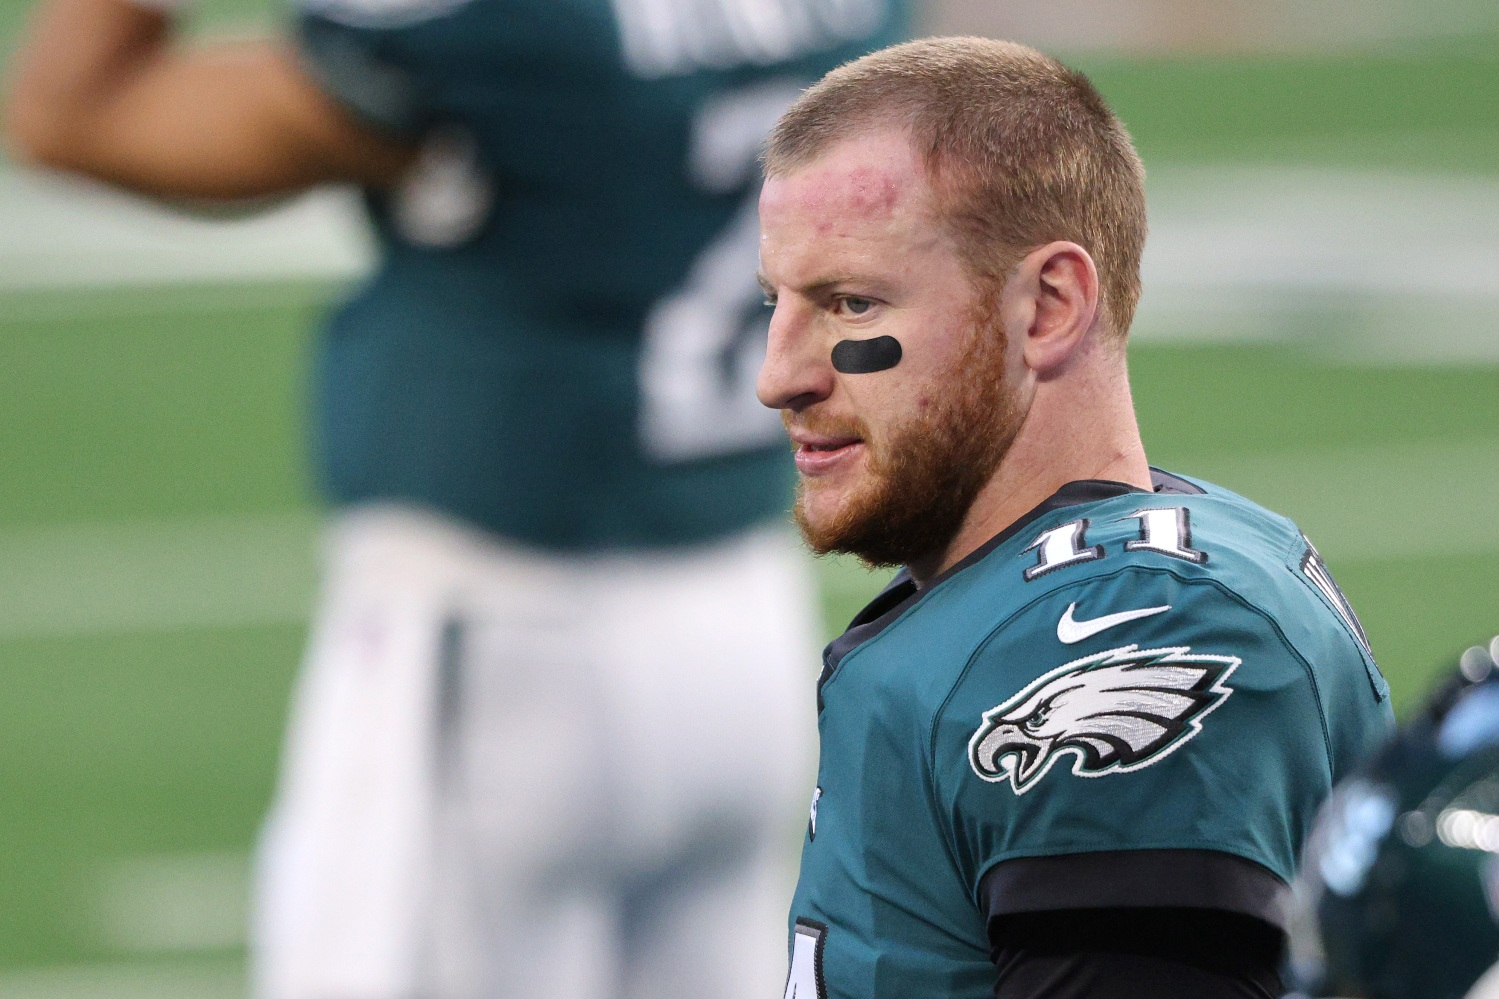 'He's Not A Locker Room Cancer': Former Eagles' Malcolm Jenkins, Chris Long Offer Insight Into Carson Wentz Saga - CBS Philly